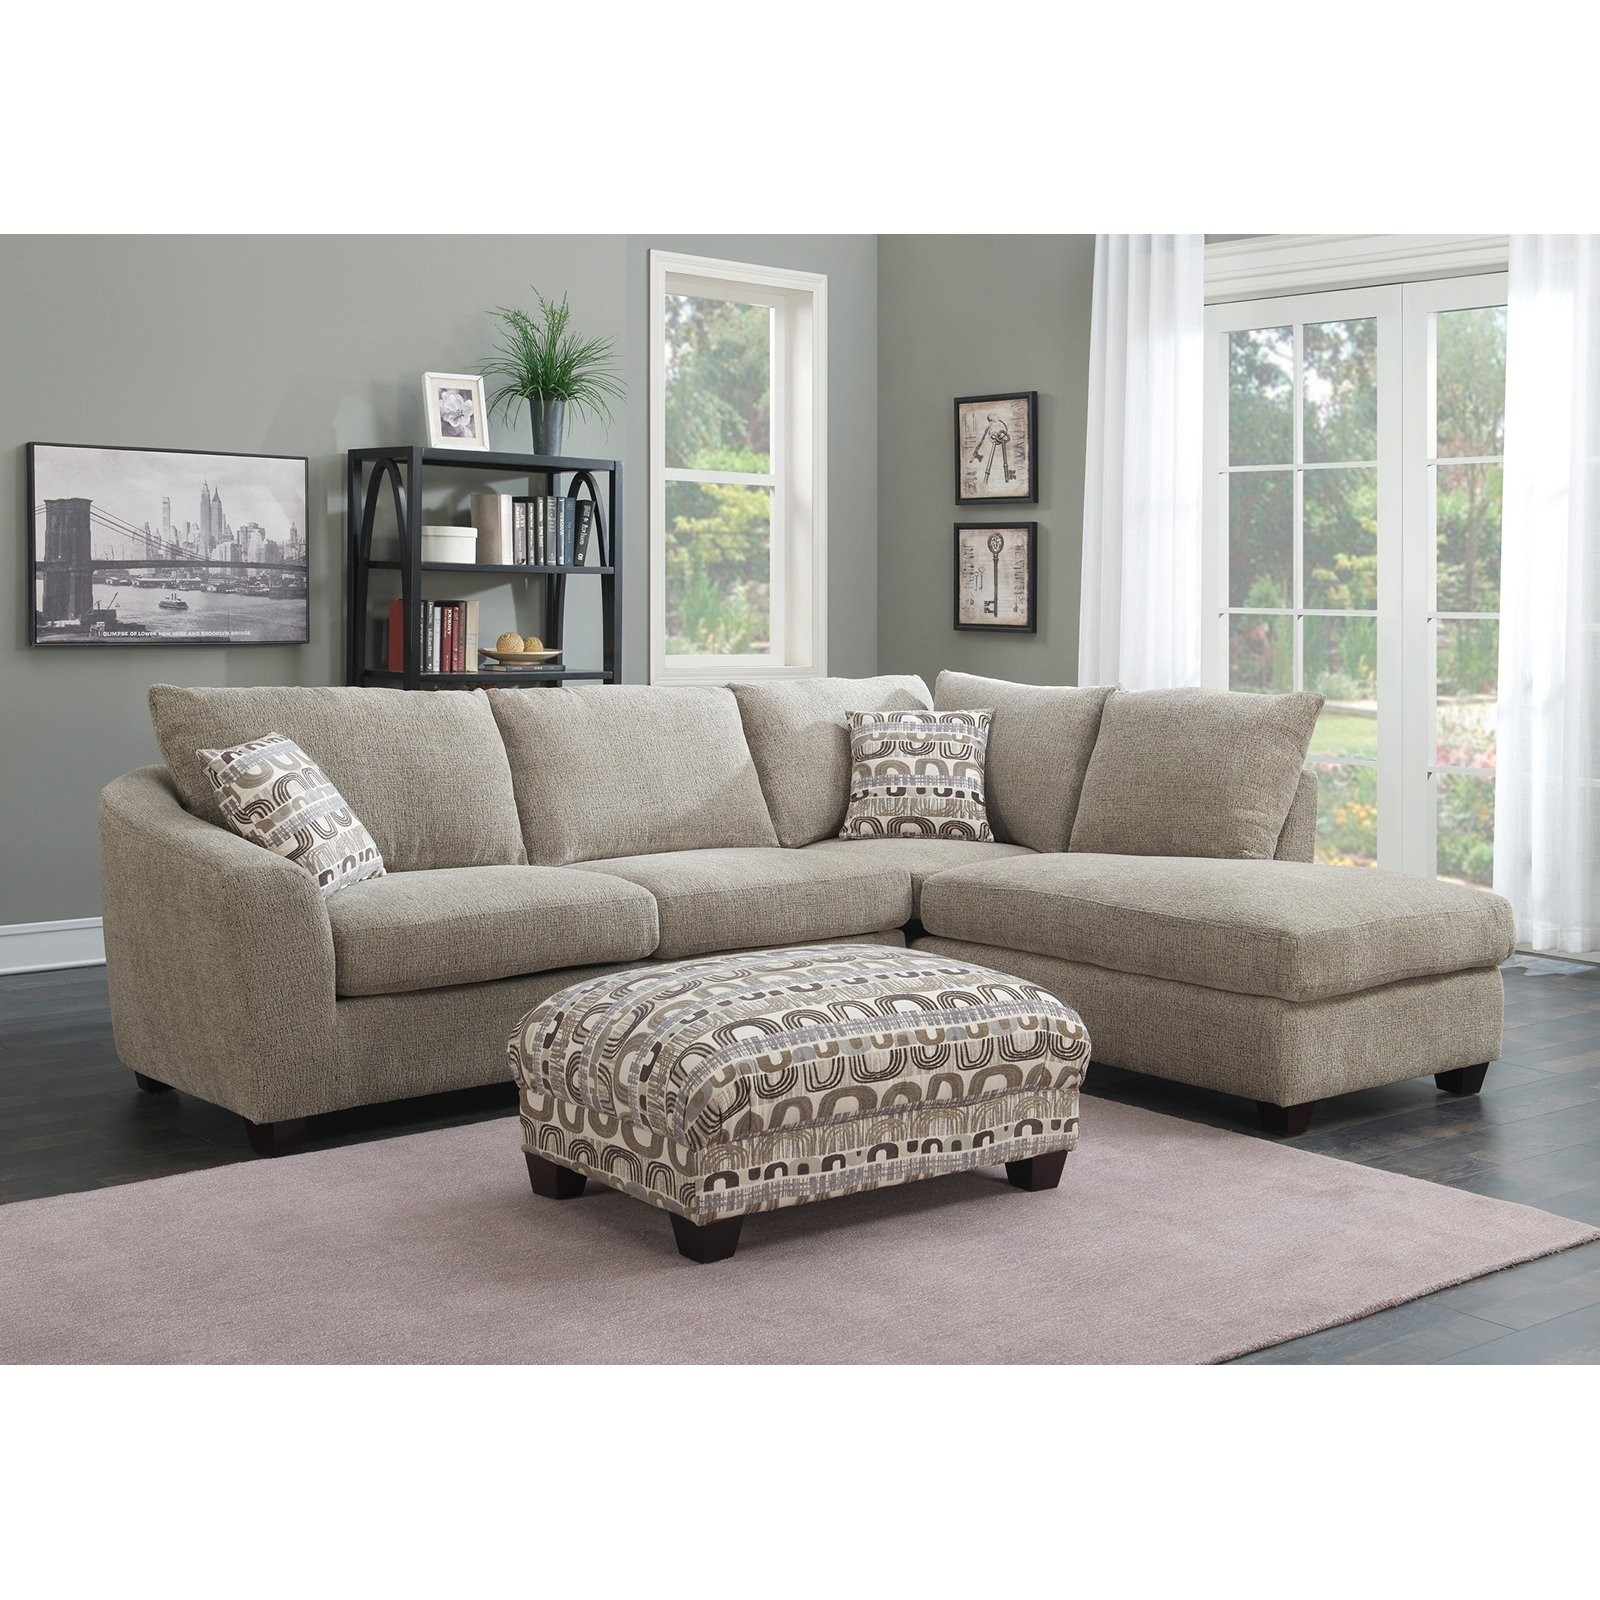 2 Piece Sectional With Chaise Avery W Laf Armless Living Spaces Within Avery 2 Piece Sectionals With Laf Armless Chaise (Image 3 of 25)